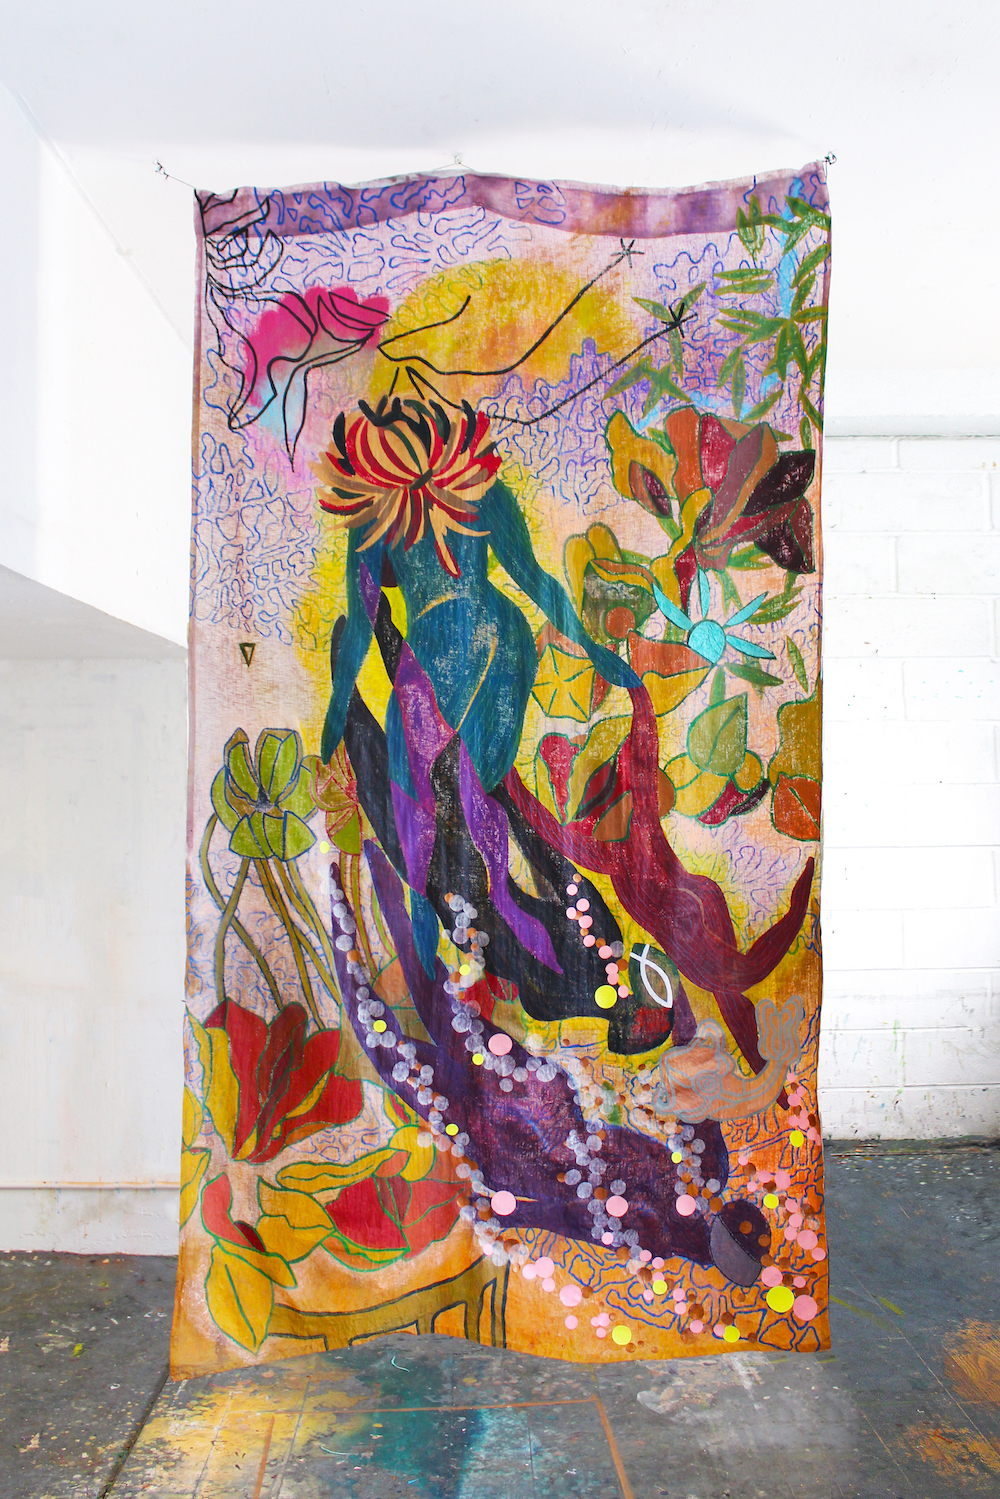 Painting on mixed papers, depicting abstract woman in colors, hanging from ceiling in light-filled space